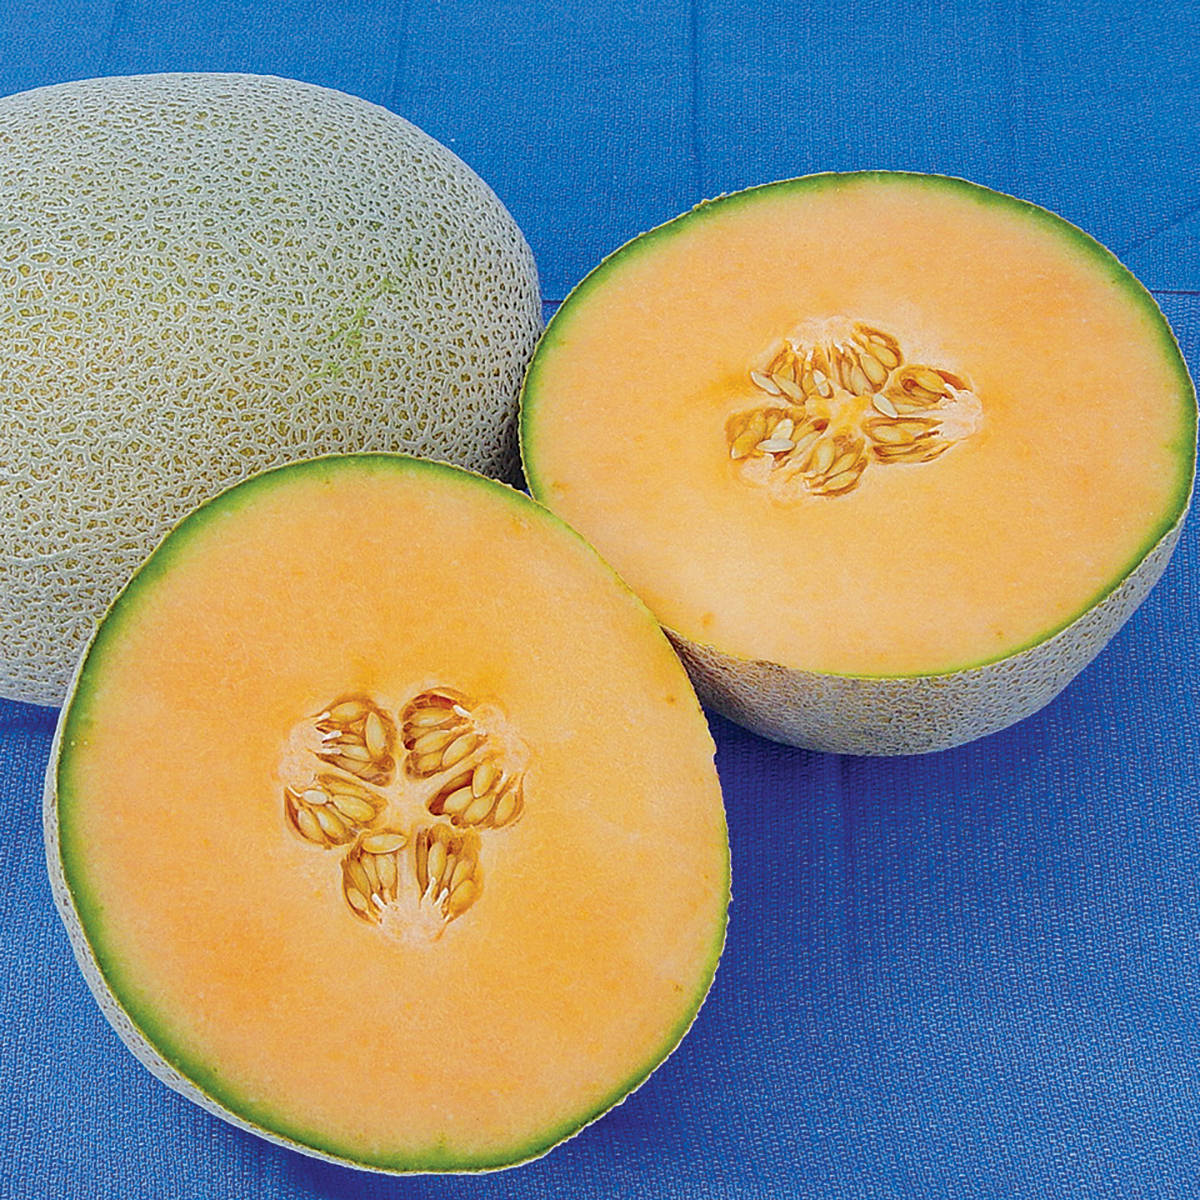 Python F1 Hybrid Melon Seeds Ne Seed Learn about the health benefits of cantaloupe / melons for free. python f1 hybrid melon seeds